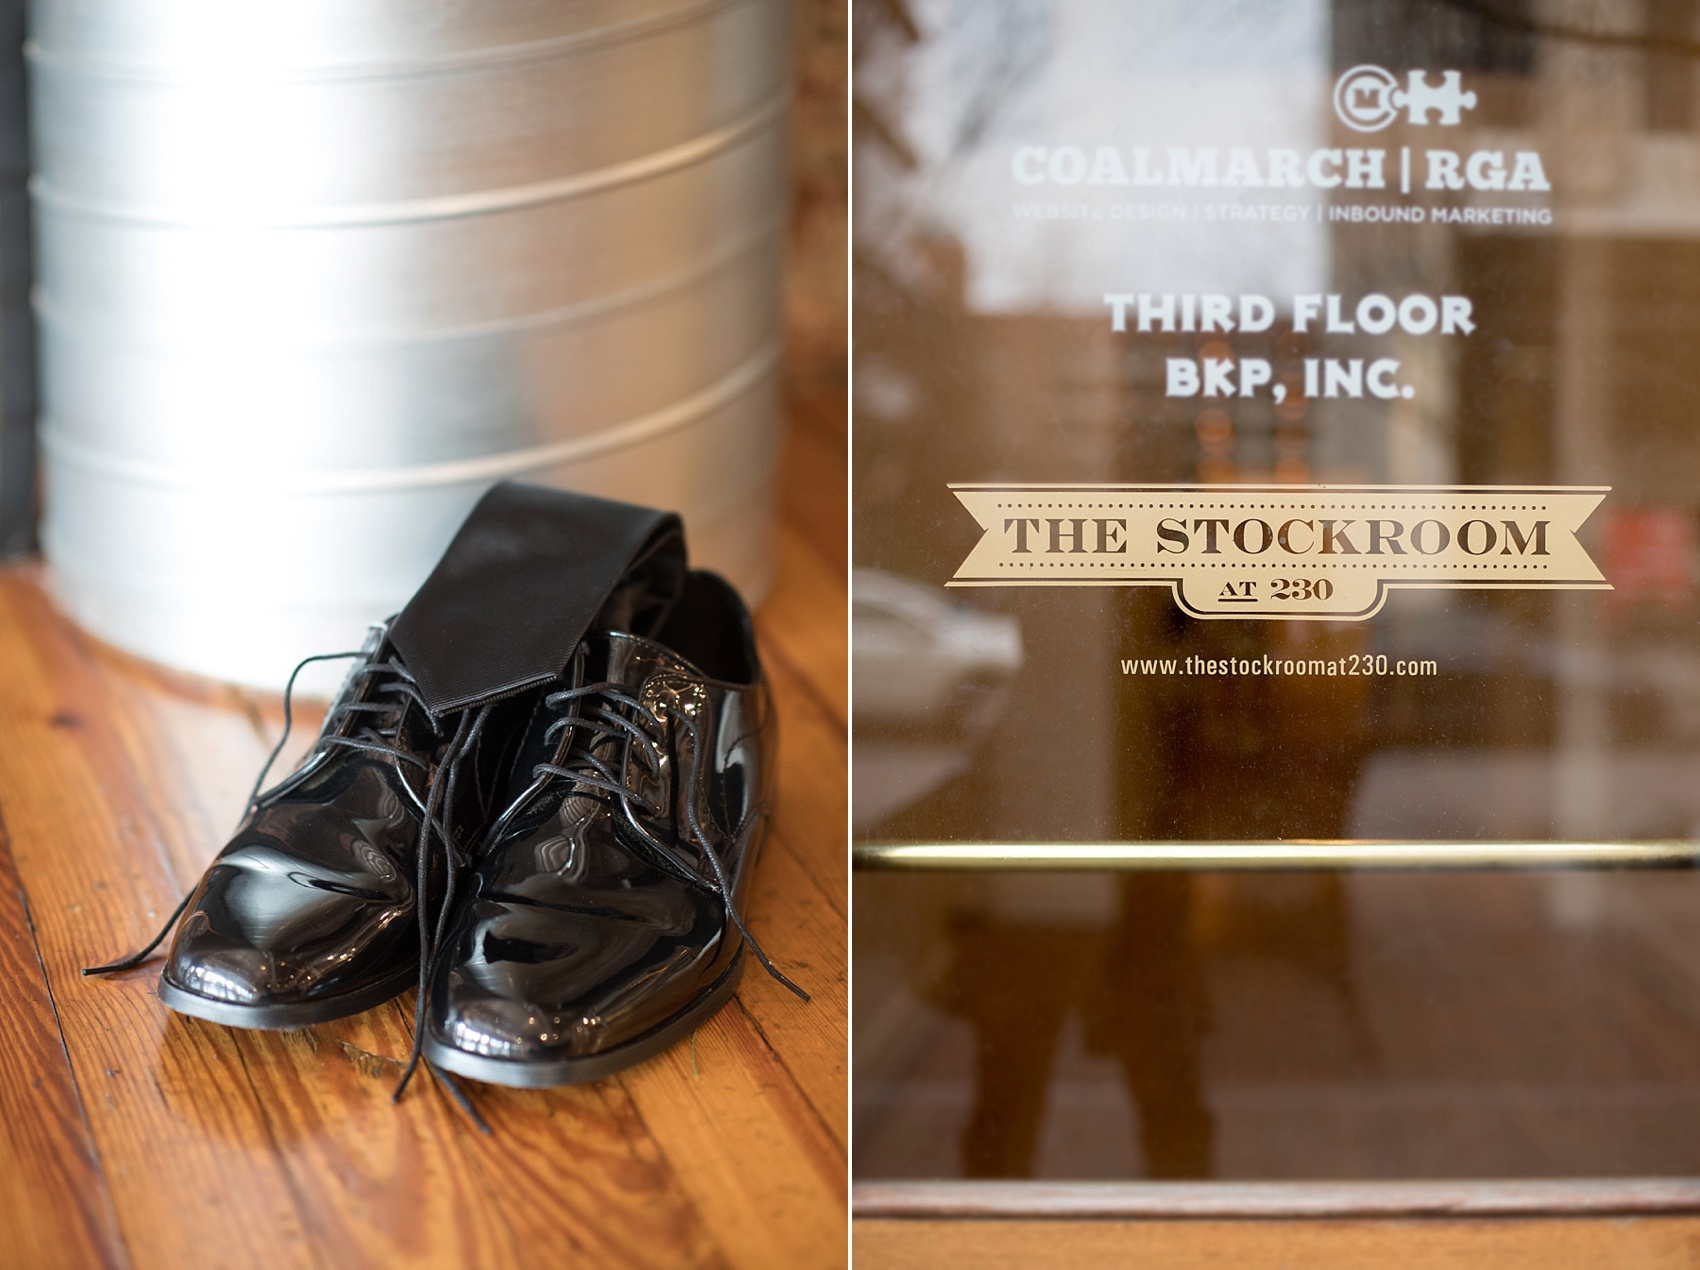 Raleigh wedding photographer Mikkel Paige Photography captures detail images at The Stockroom.